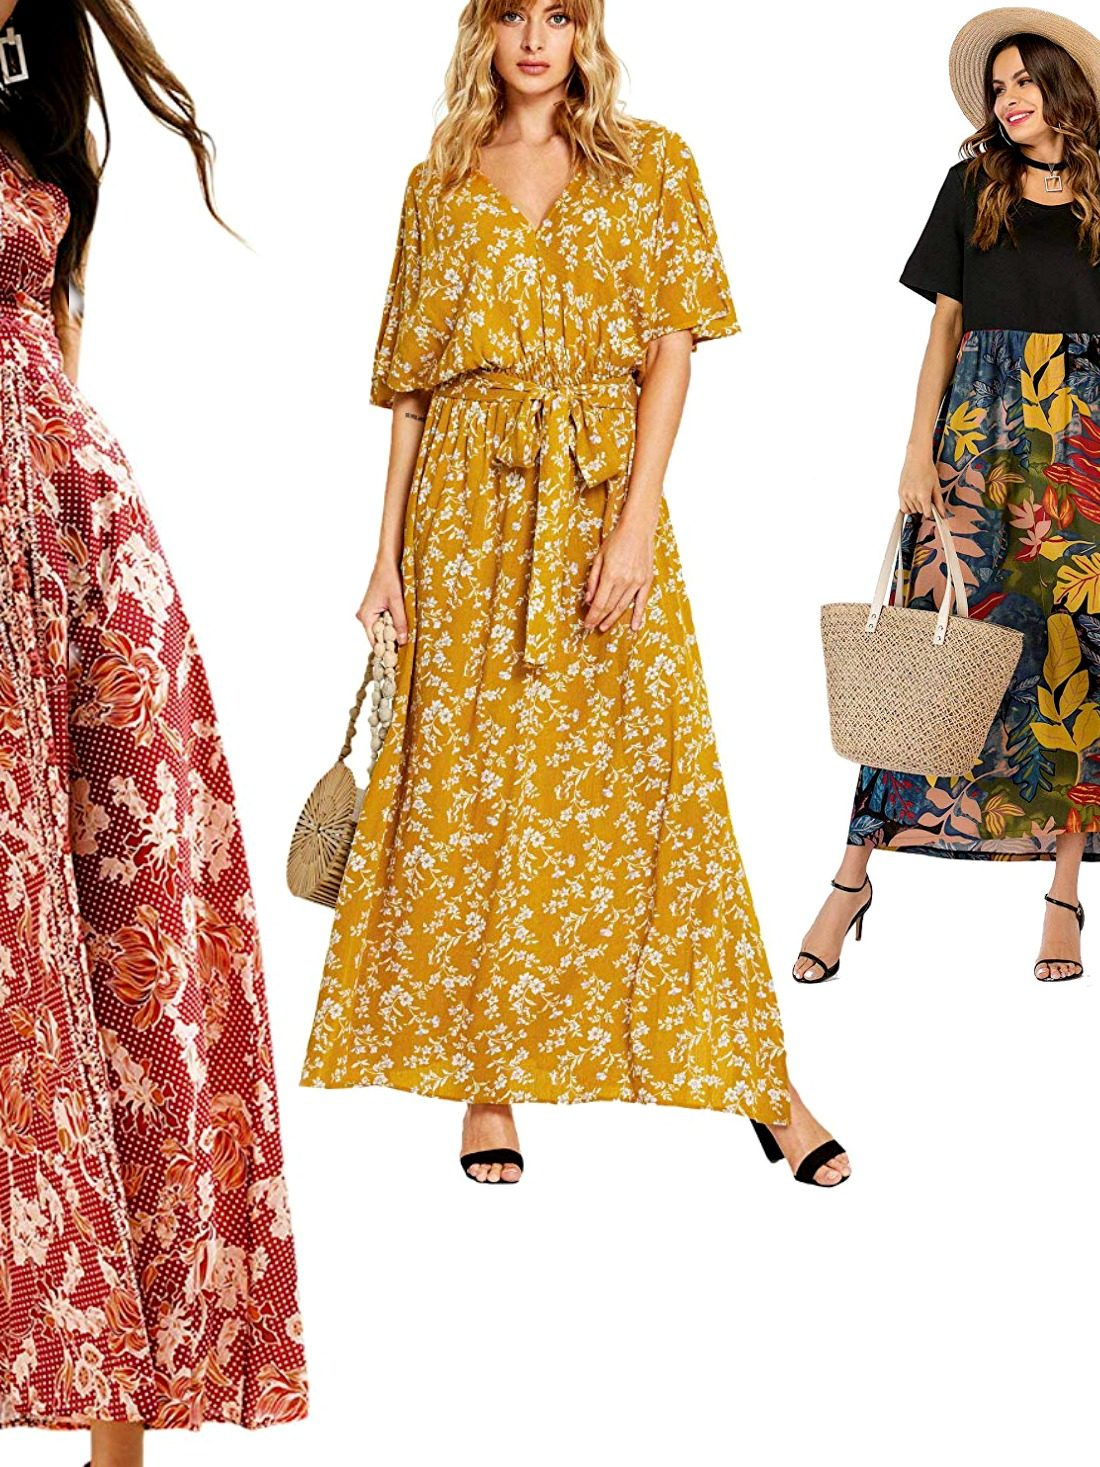 Undecided over your Summer outfit? Grab one floral maxi dress from our list of 12 selected best and get ready for Summer in style! Cuteness + floral + long length: you'll be a total convert - trust us!